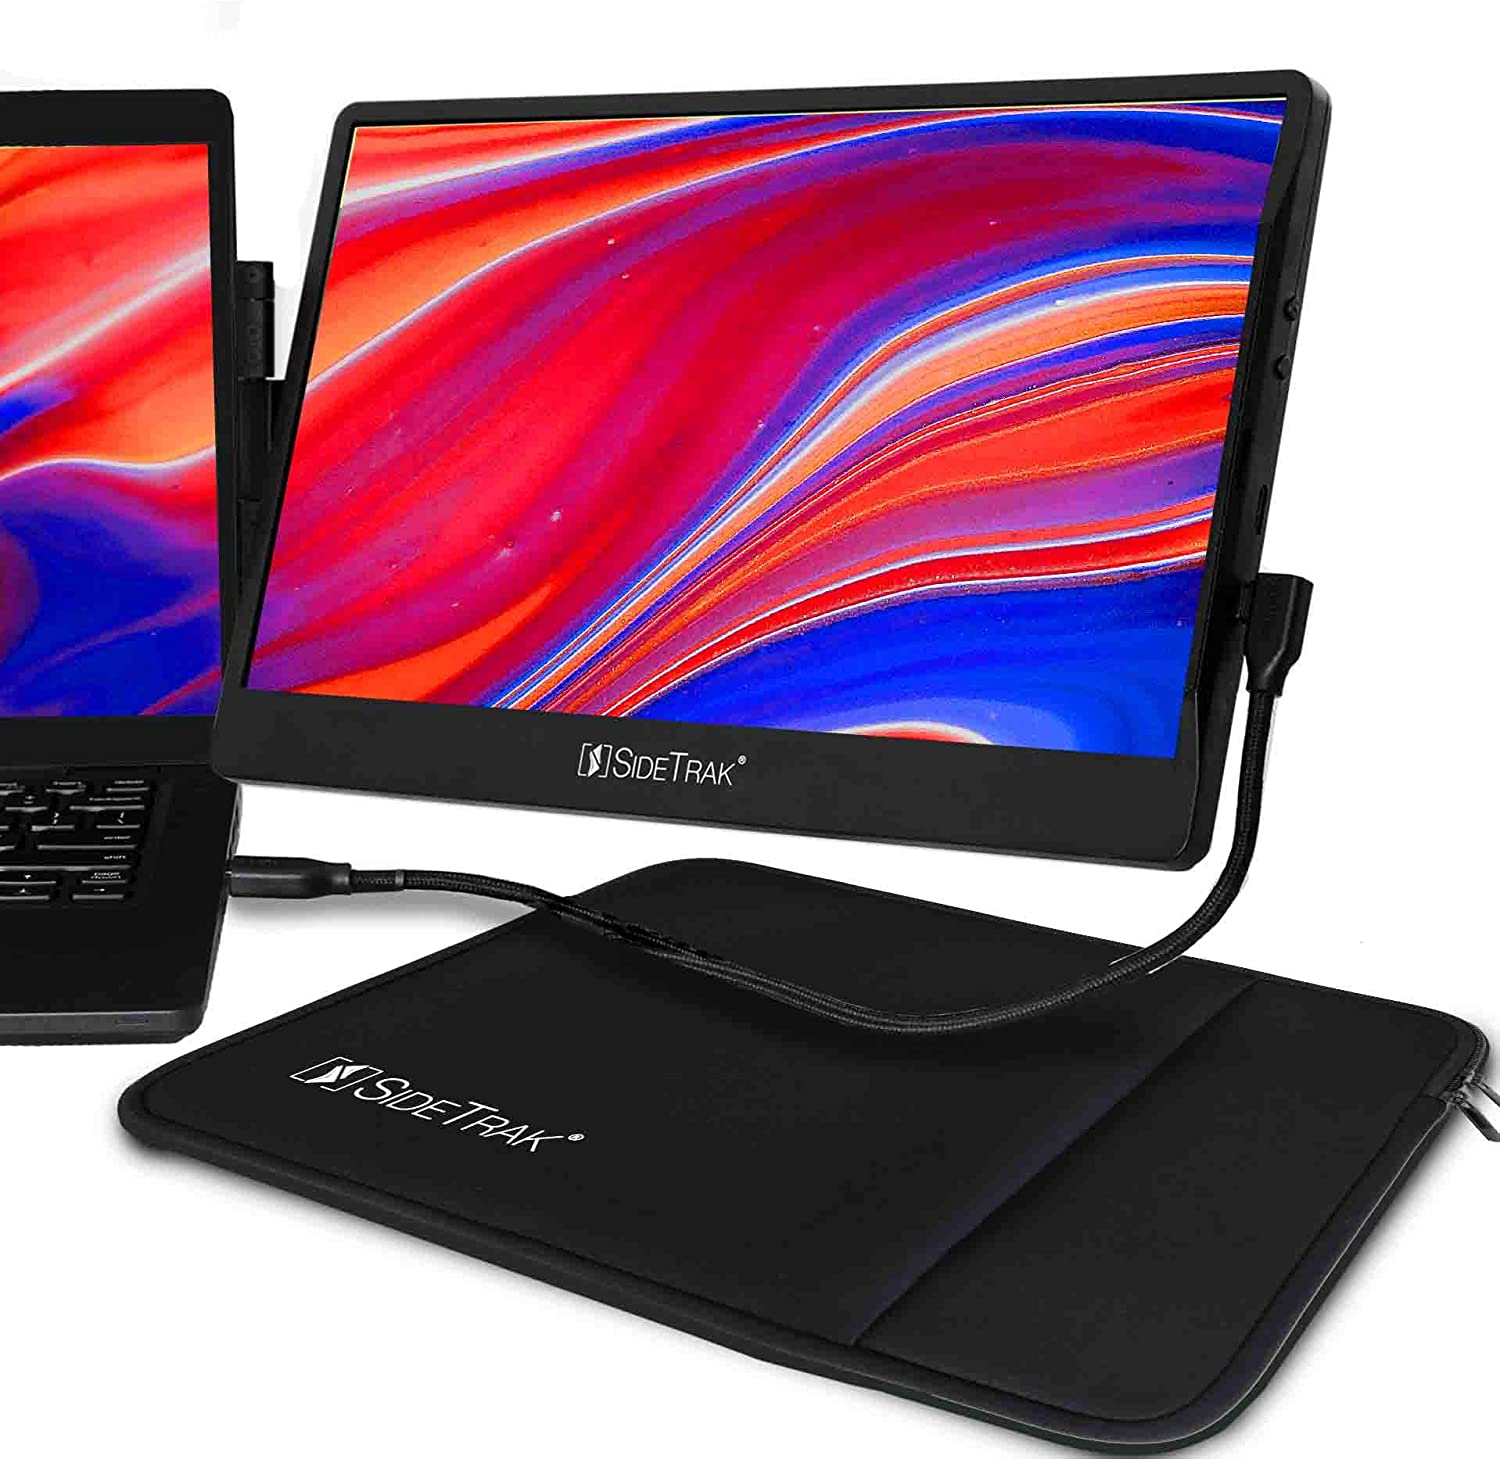 """SideTrak Swivel Attachable Portable Monitor for Laptop 12.5"""" FHD IPS Laptop Screen with 14"""" Protective Case   Compatible with Mac, PC, & Chrome   Fits All Laptop Sizes   Powered by USB-C or Mini HDMI"""